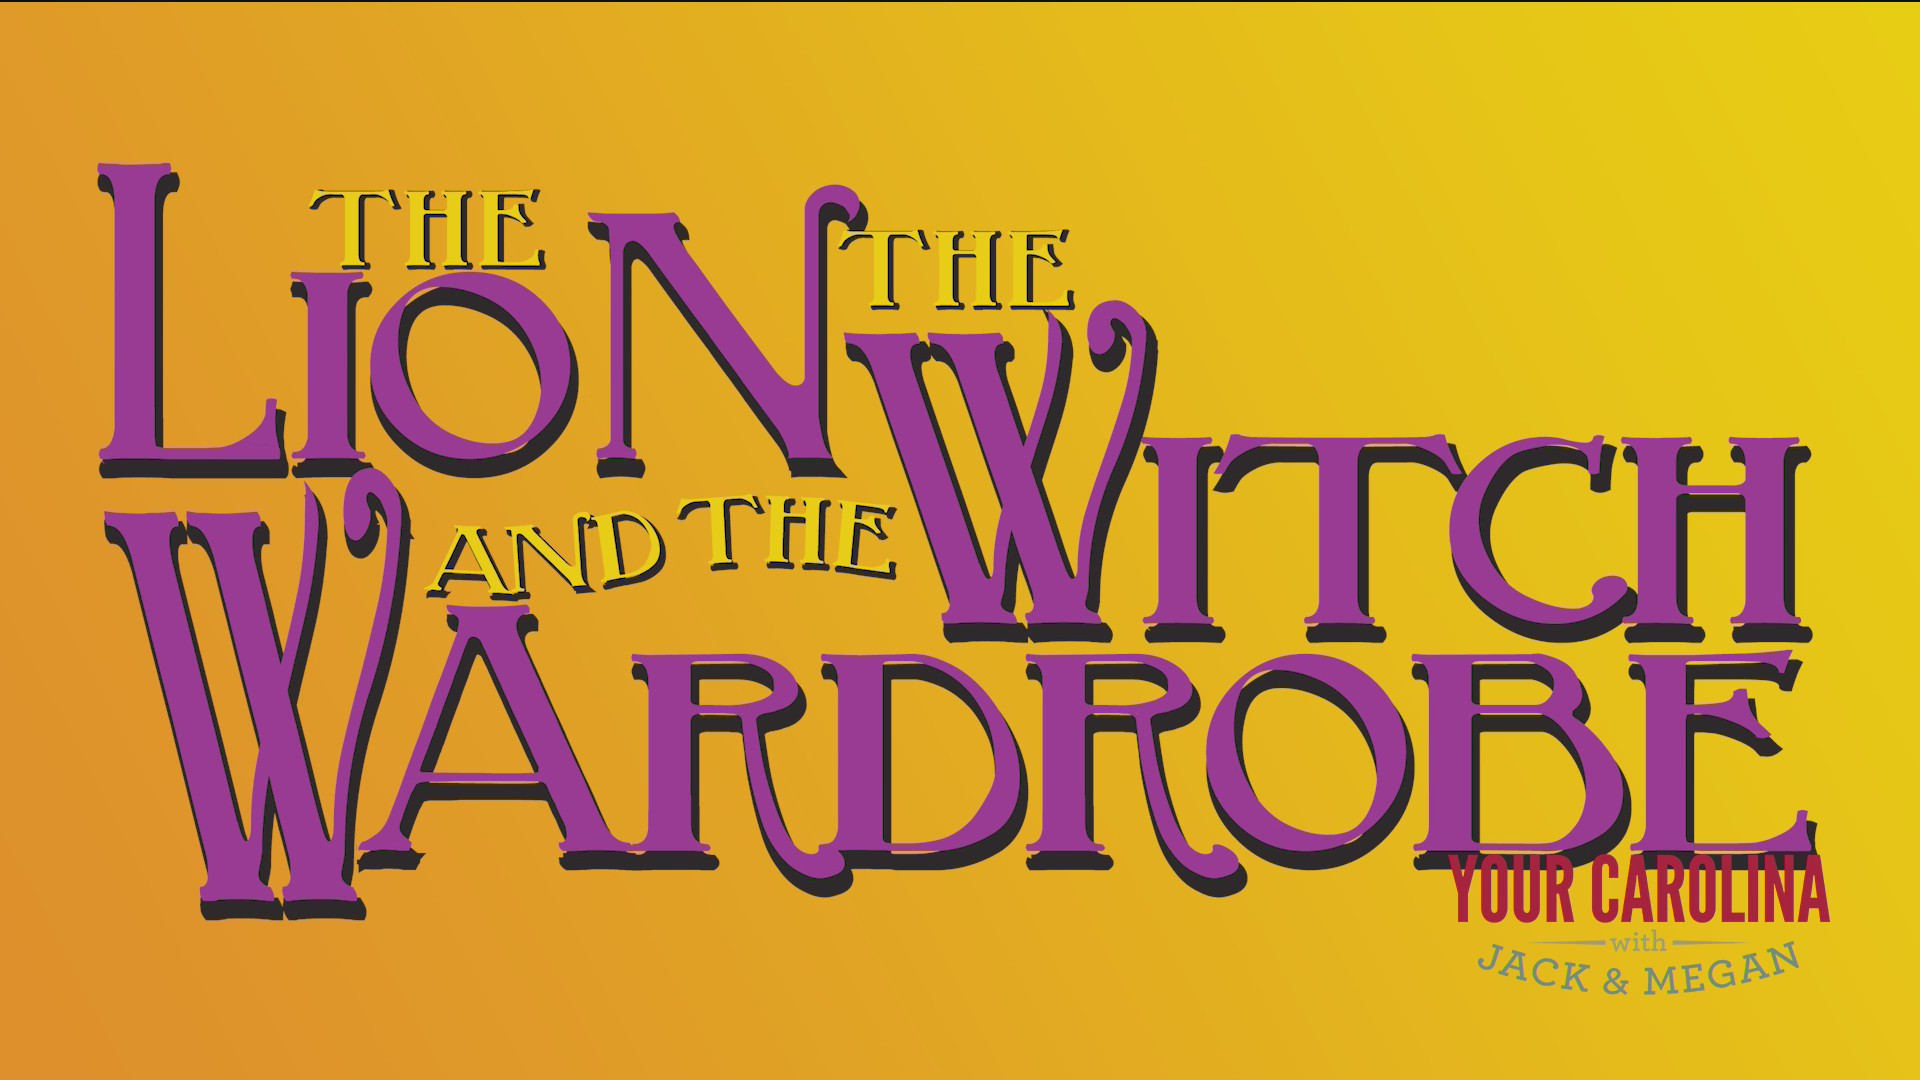 SC Childrens Theatre Presents The Lion, the Witch and the Wardrobe